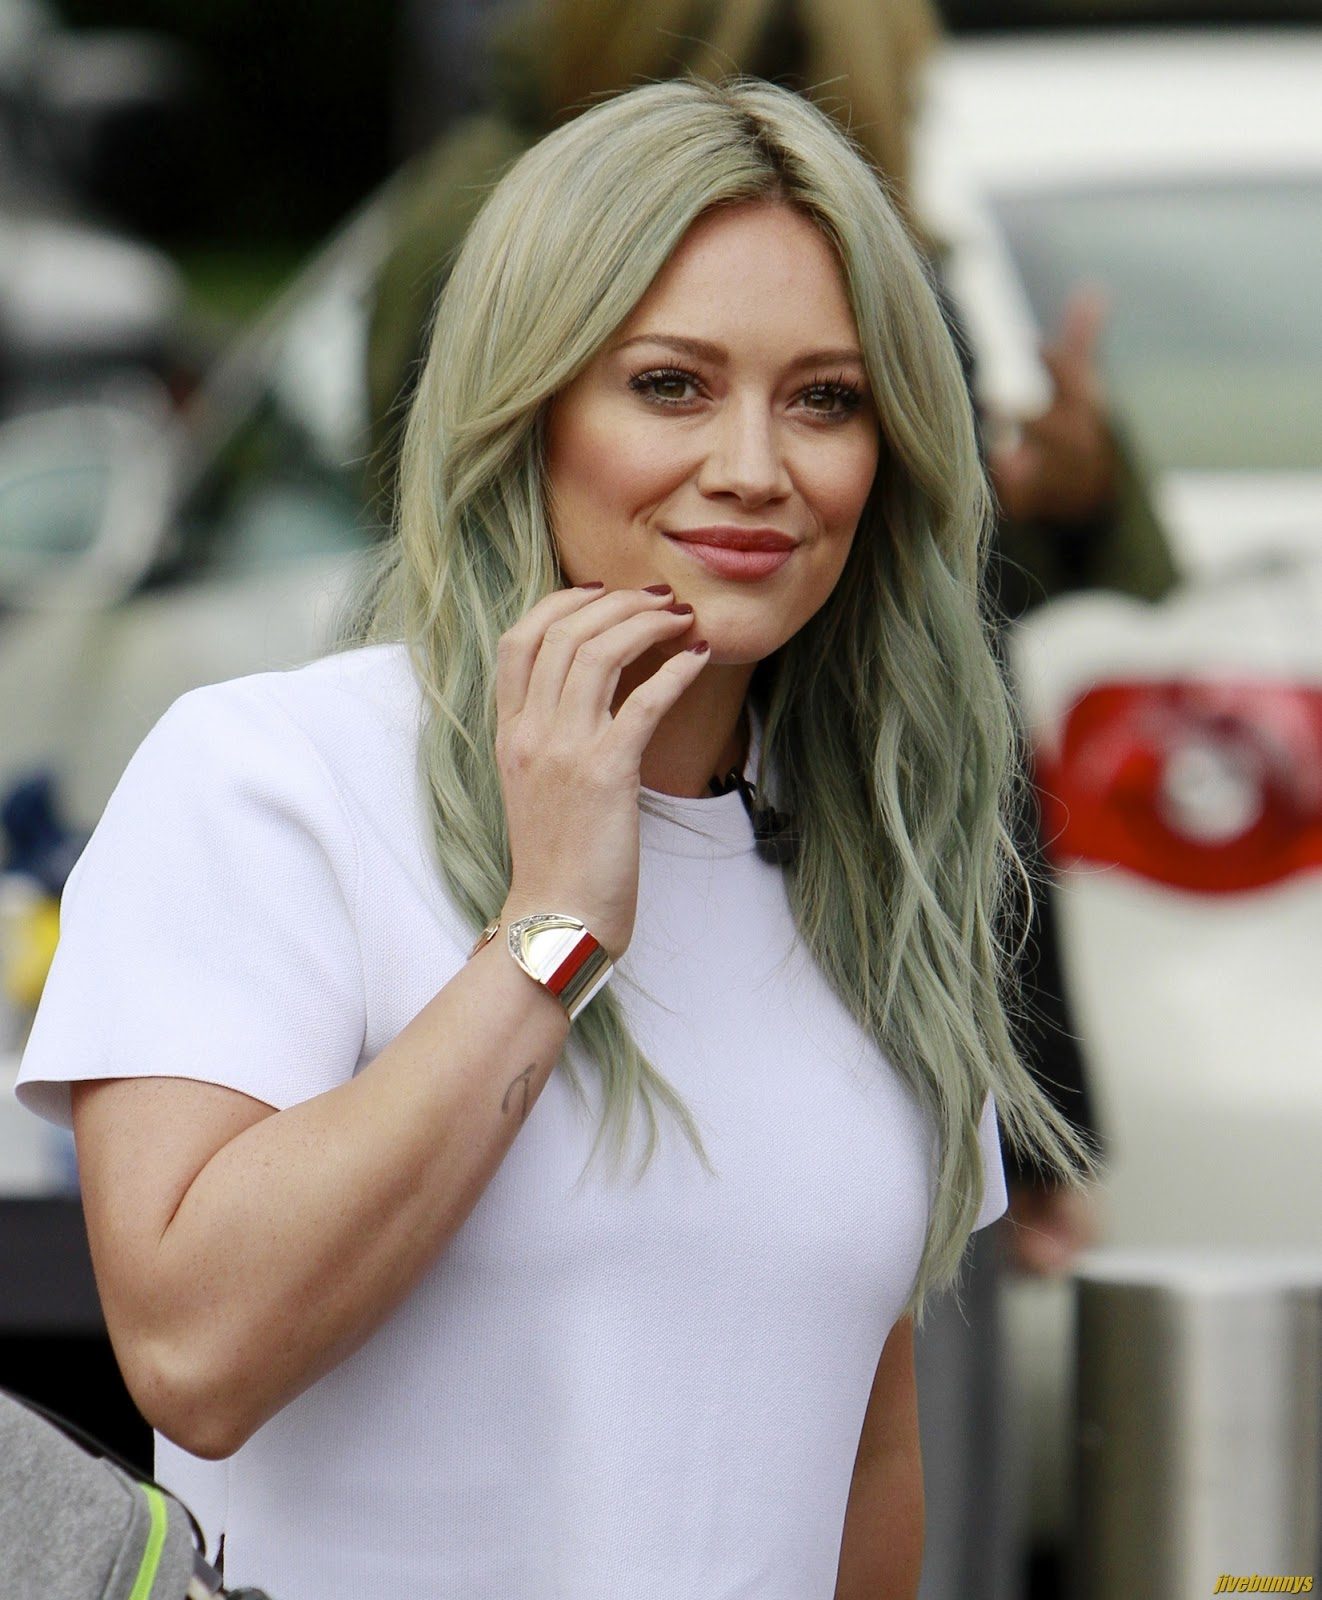 Hilary Duff Nude Pics & Videos That You